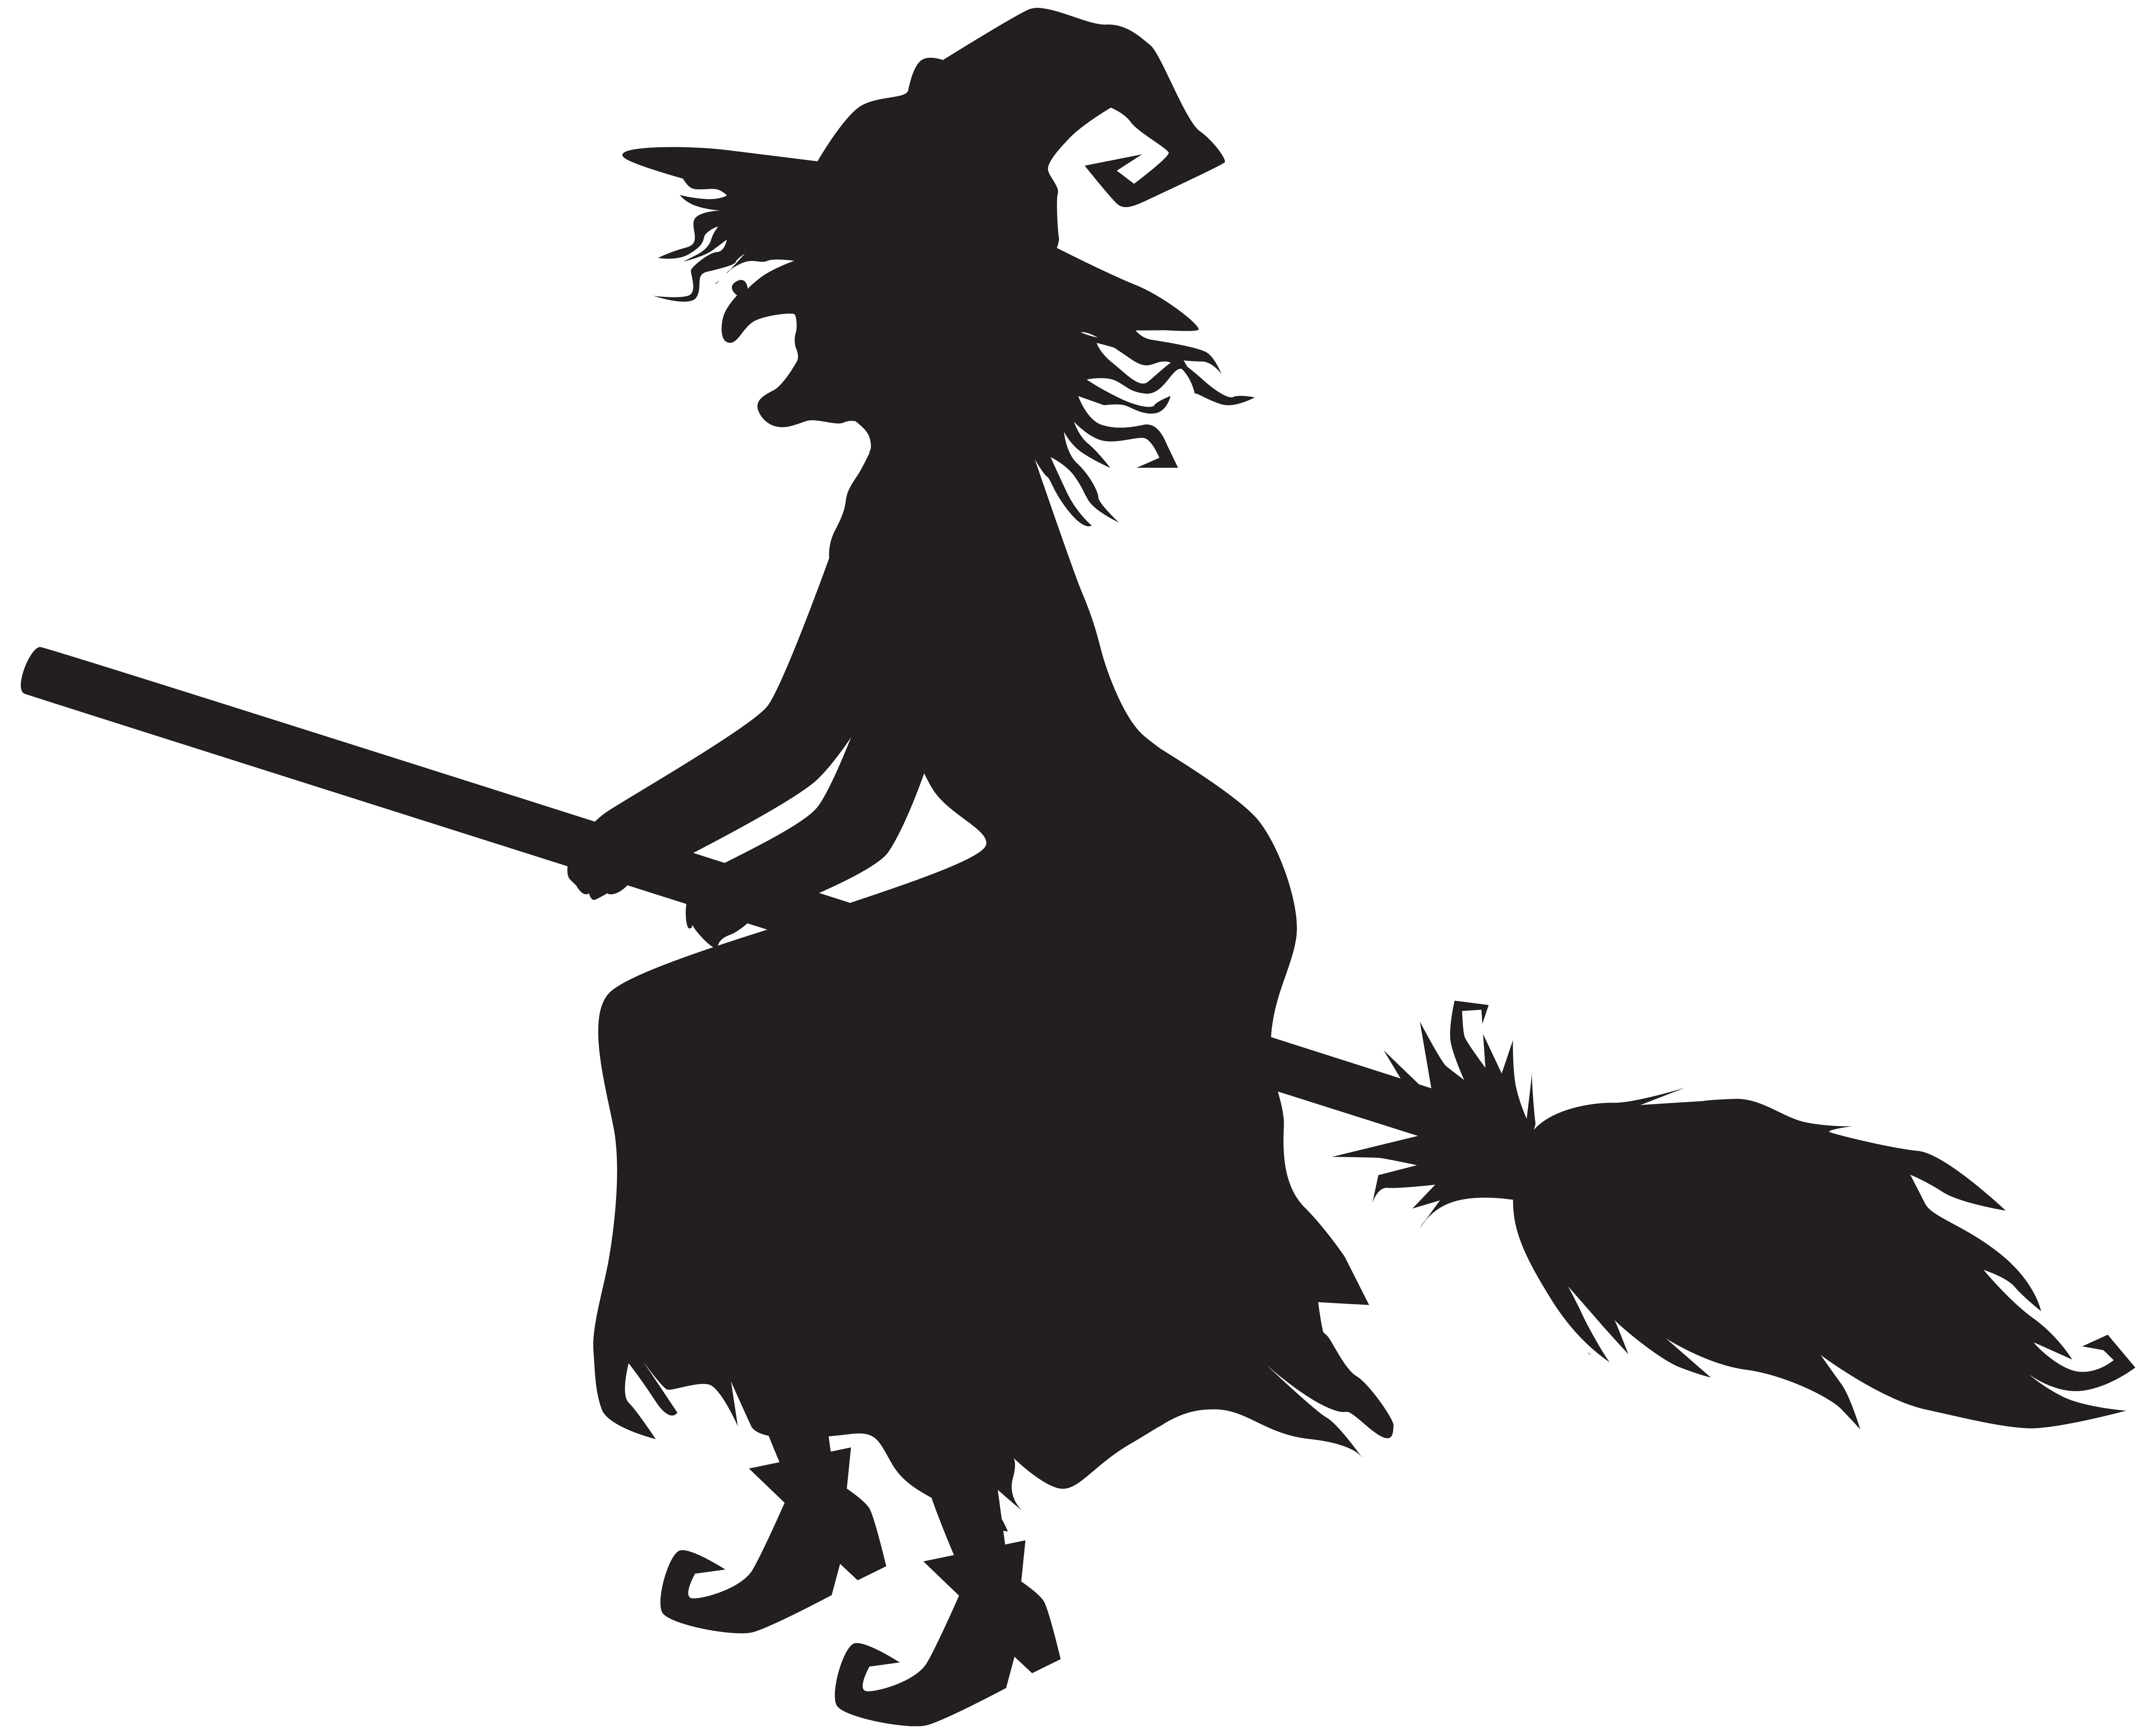 Witch on a broomstick clipart clip art transparent download Witch On Broom Clipart | Free download best Witch On Broom ... clip art transparent download